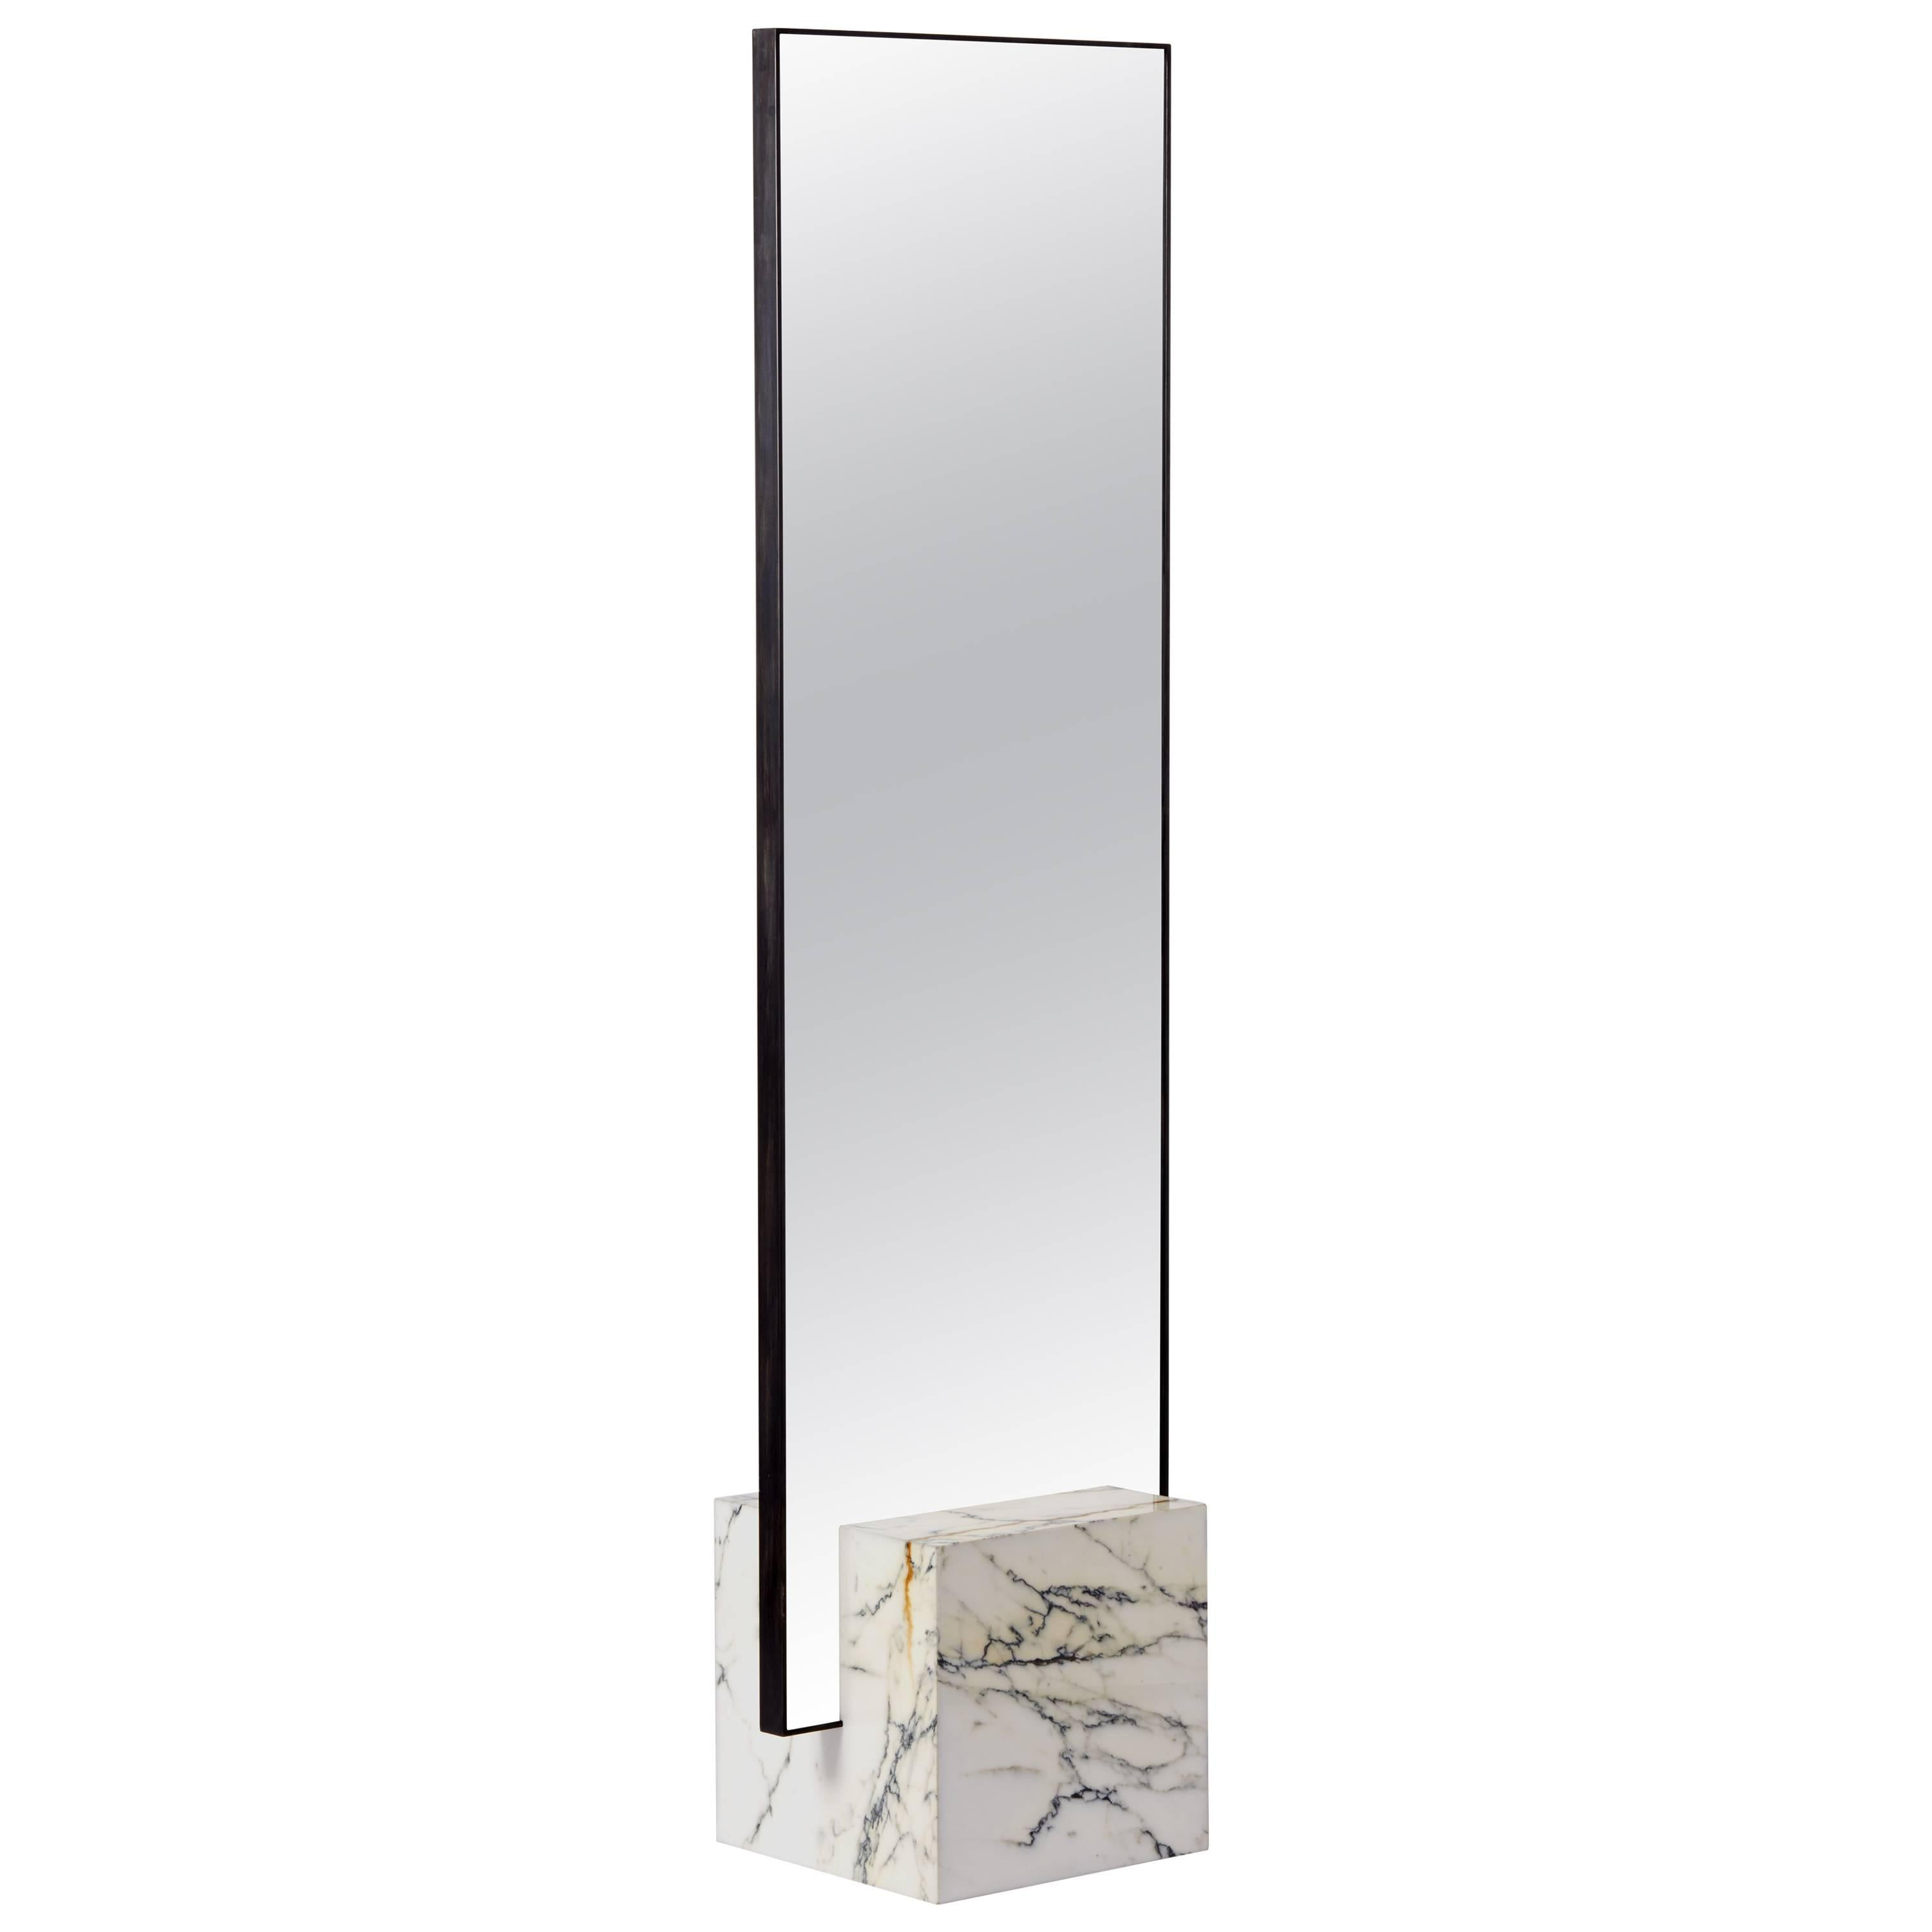 Standing Mirror Coexist Slash Standing Mirror With Marble Concrete Rubber And Black Steel Frame